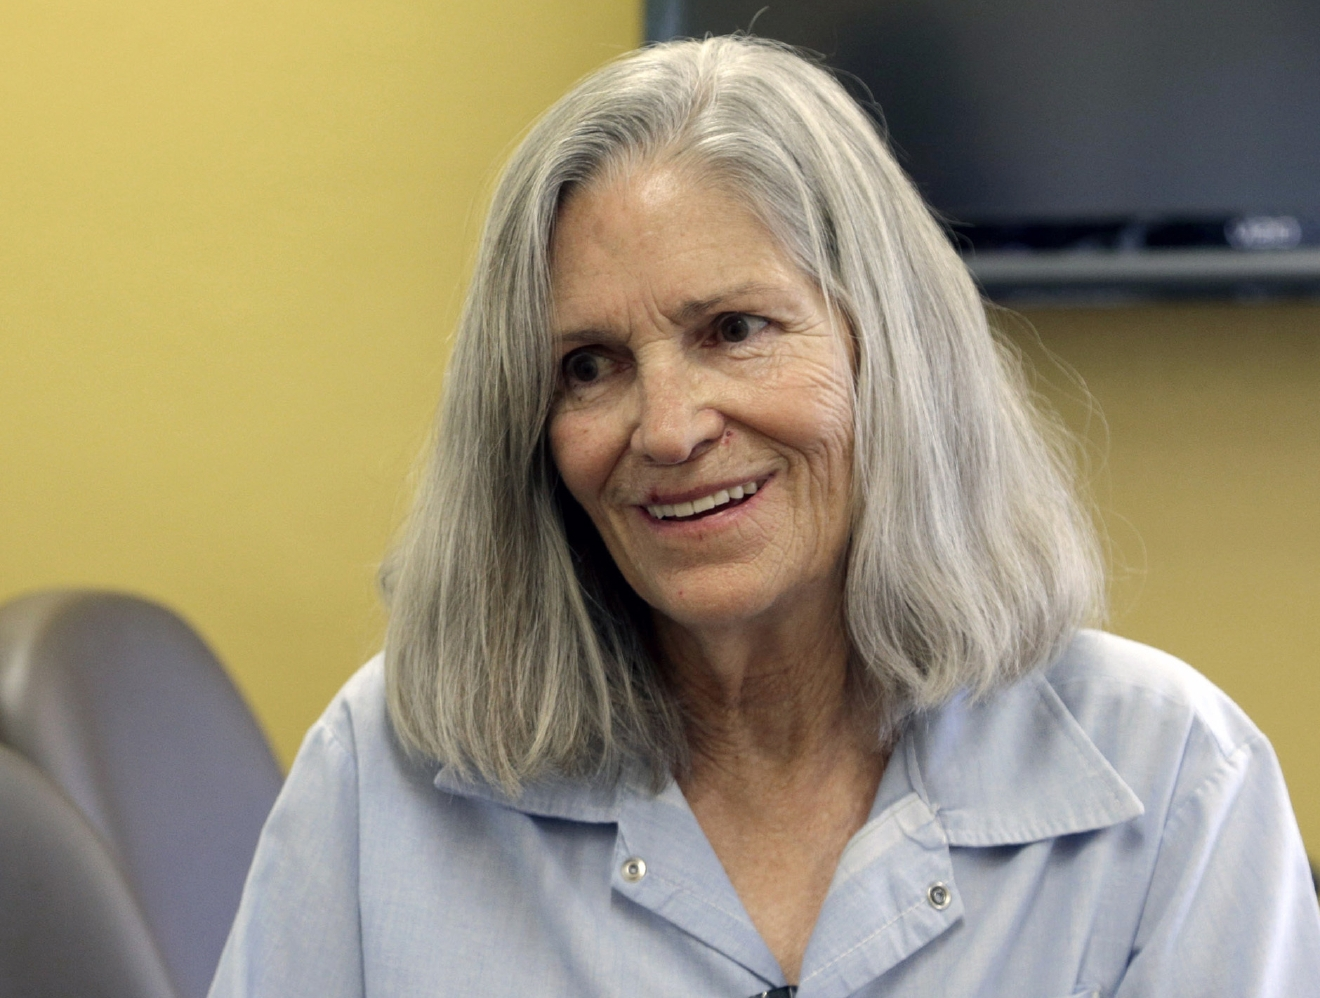 FILE - In this April 14, 2016 file photo, former Charles Manson follower Leslie Van Houten confers with her attorney Rich Pfeiffer, not shown, during a break from her hearing before the California Board of Parole Hearings at the California Institution for Women in Chino, Calif. A judge has upheld Gov. Jerry Brown's decision to keep Charles Manson follower Van Houten in prison. Los Angeles County Superior Court Judge William Ryan on Thursday, Oct. 6, 2016, refused a request from Van Houten's lawyer to overturn Brown's decision. A state board in April had declared Van Houten, who killed a California couple more than 40 years ago, eligible for parole after years of good prison behavior. (AP Photo/Nick Ut, File)